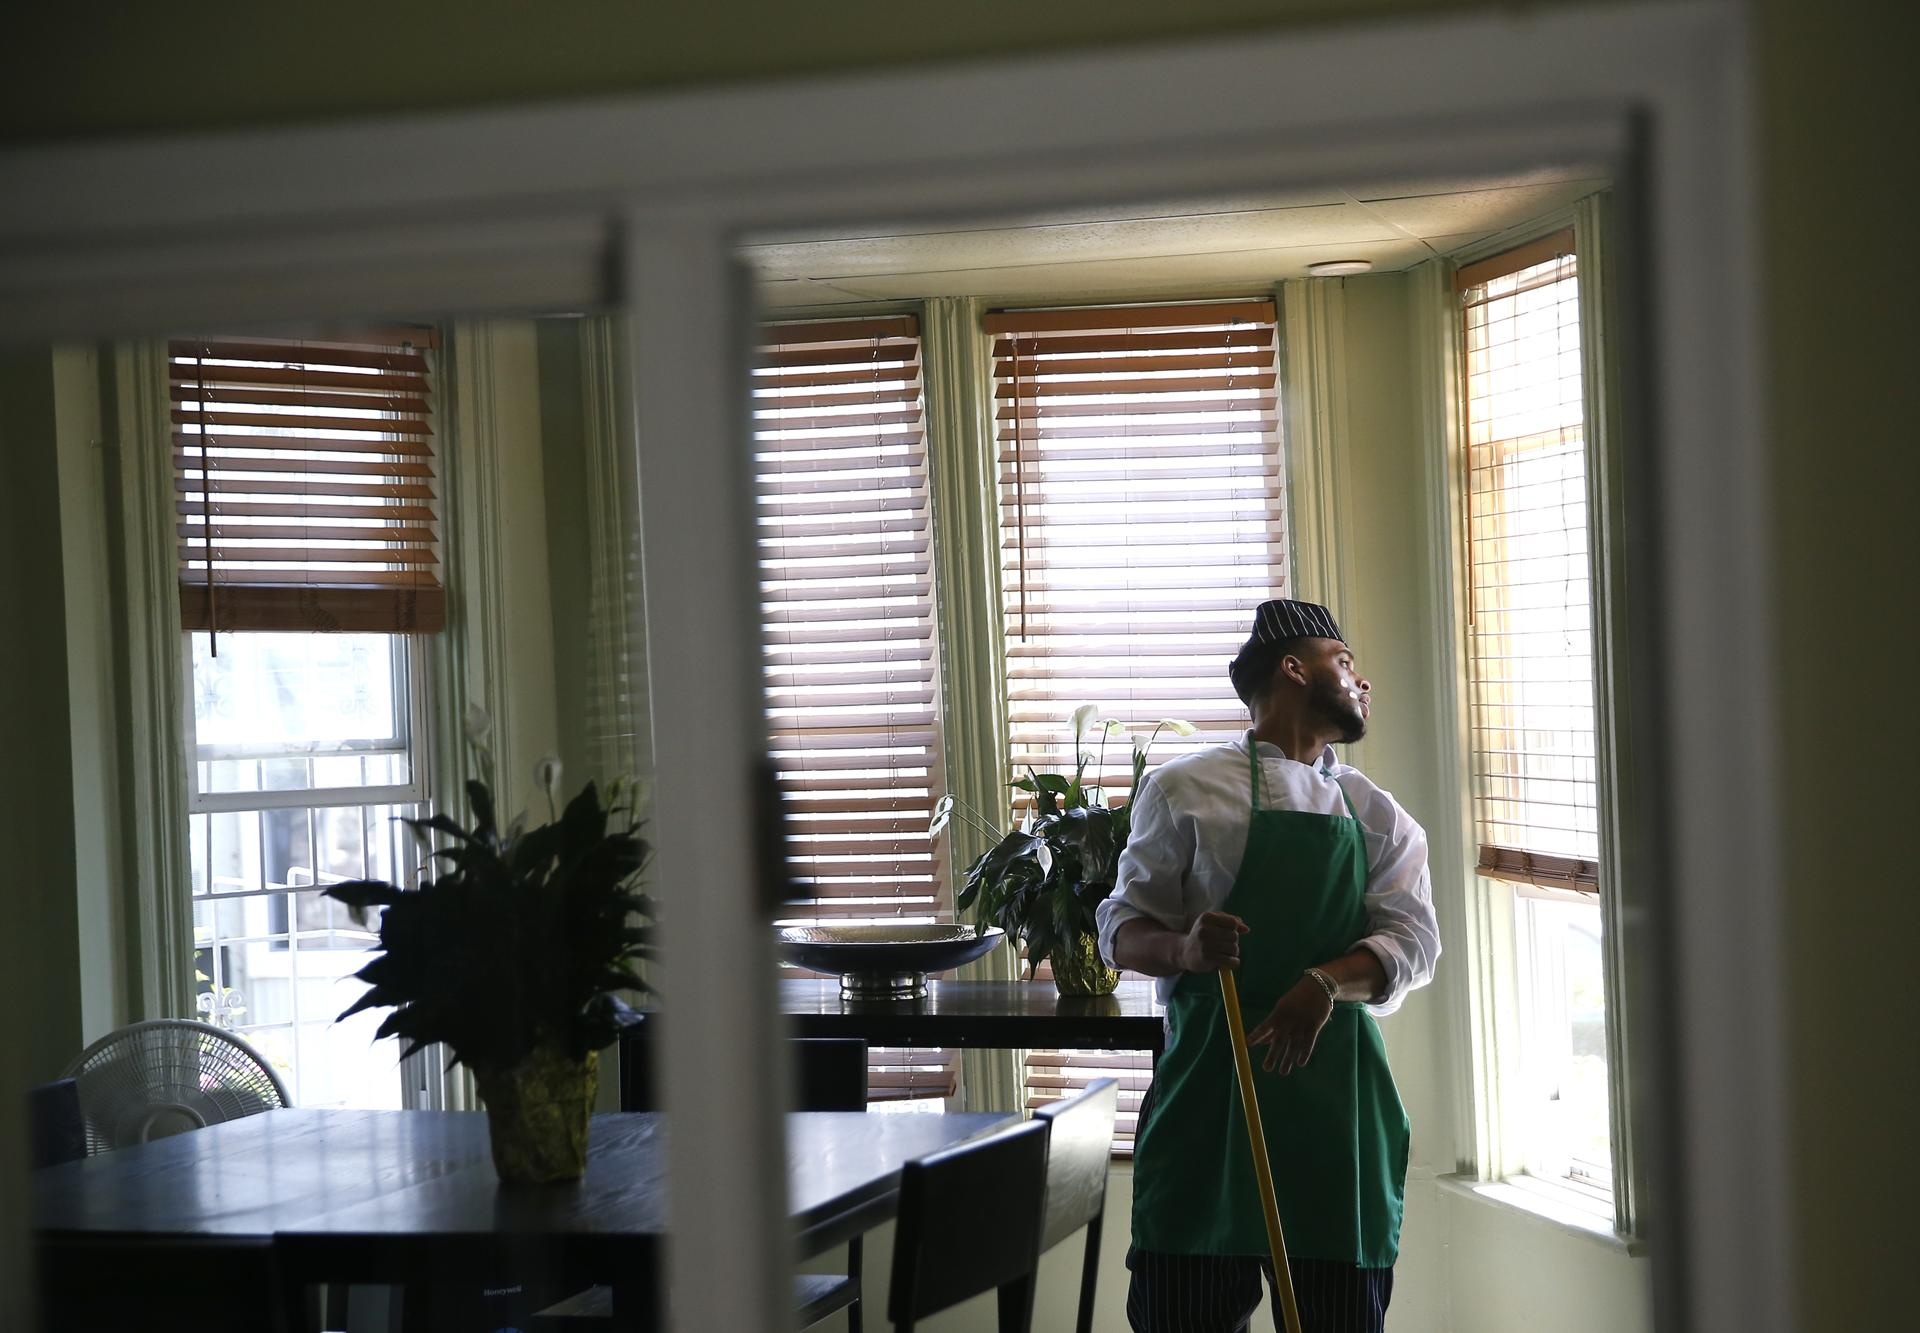 Snapchef Student Zeke Tejada Of Dorchester Leans Back To Looked Out The Window